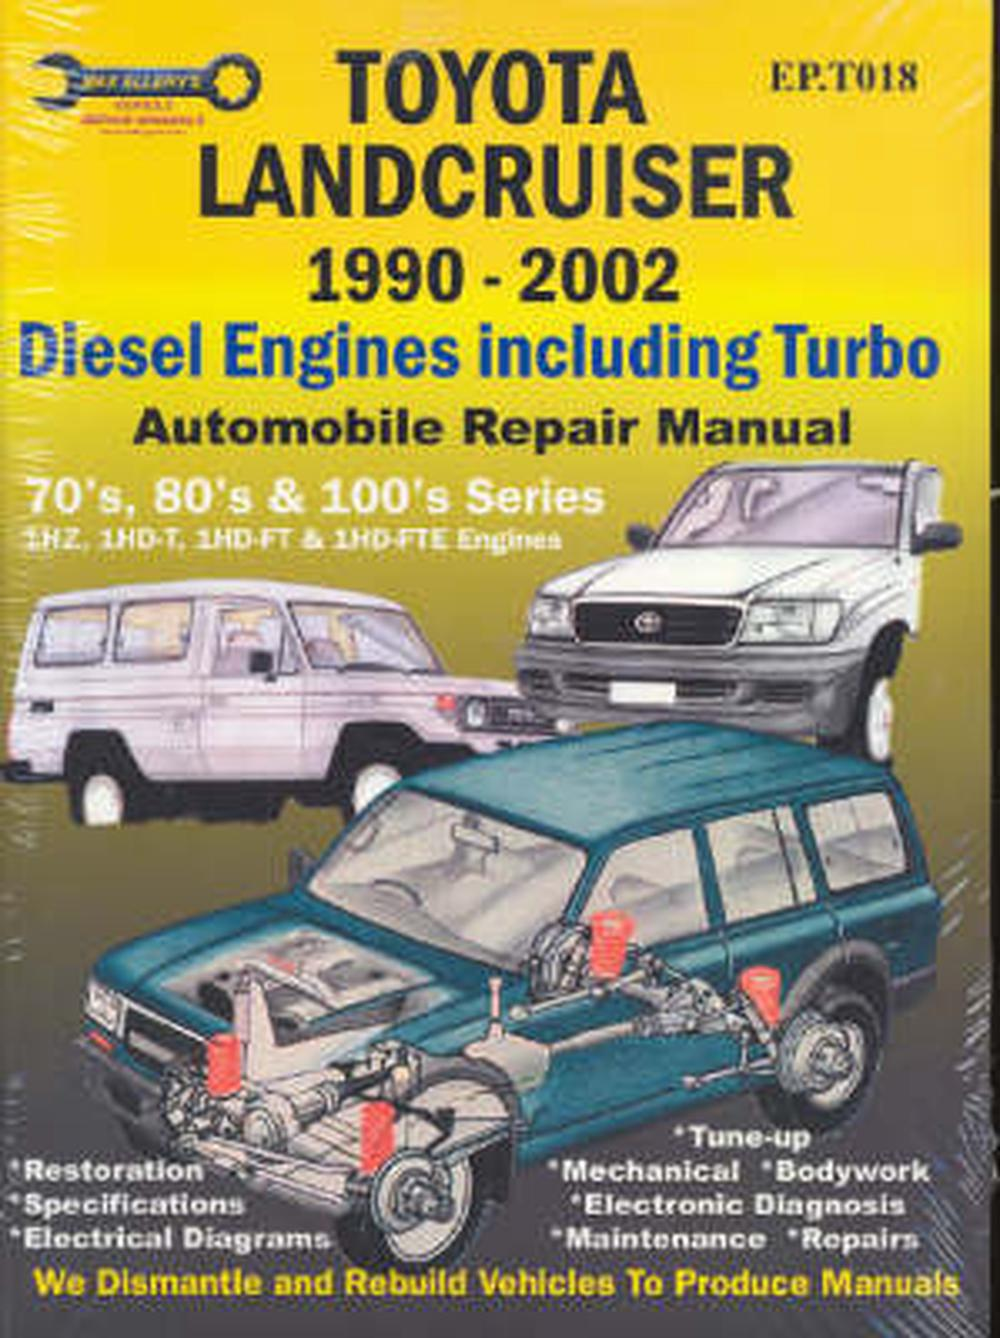 medium resolution of toyota landcruiser 1990 2007 automobile repair manual diesel engines including turbo by max ellery paperback 9781876720018 buy online at the nile